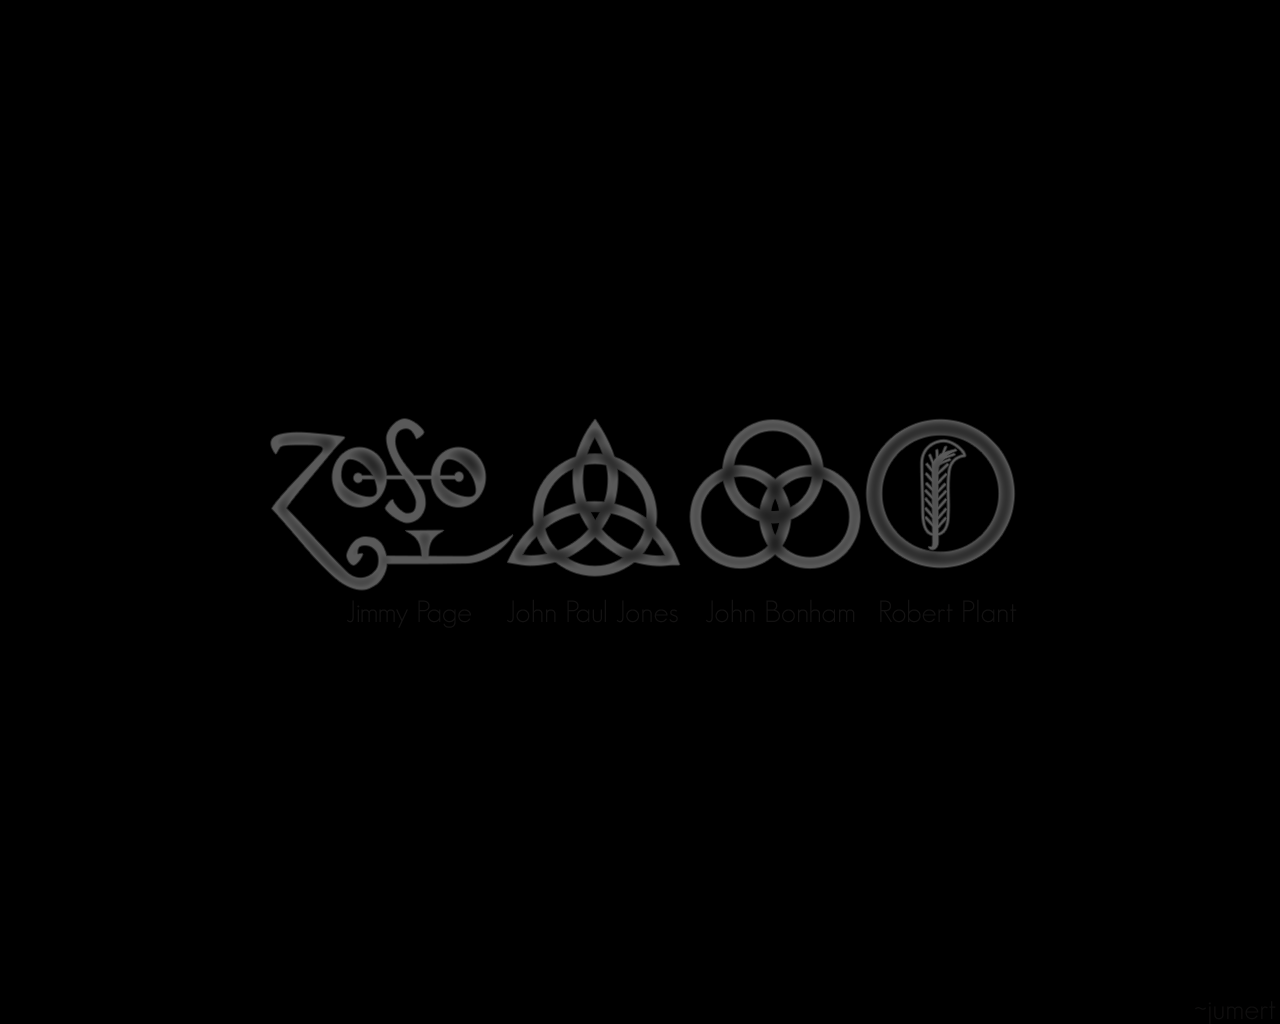 led zeppelin wallpaper - photo #2